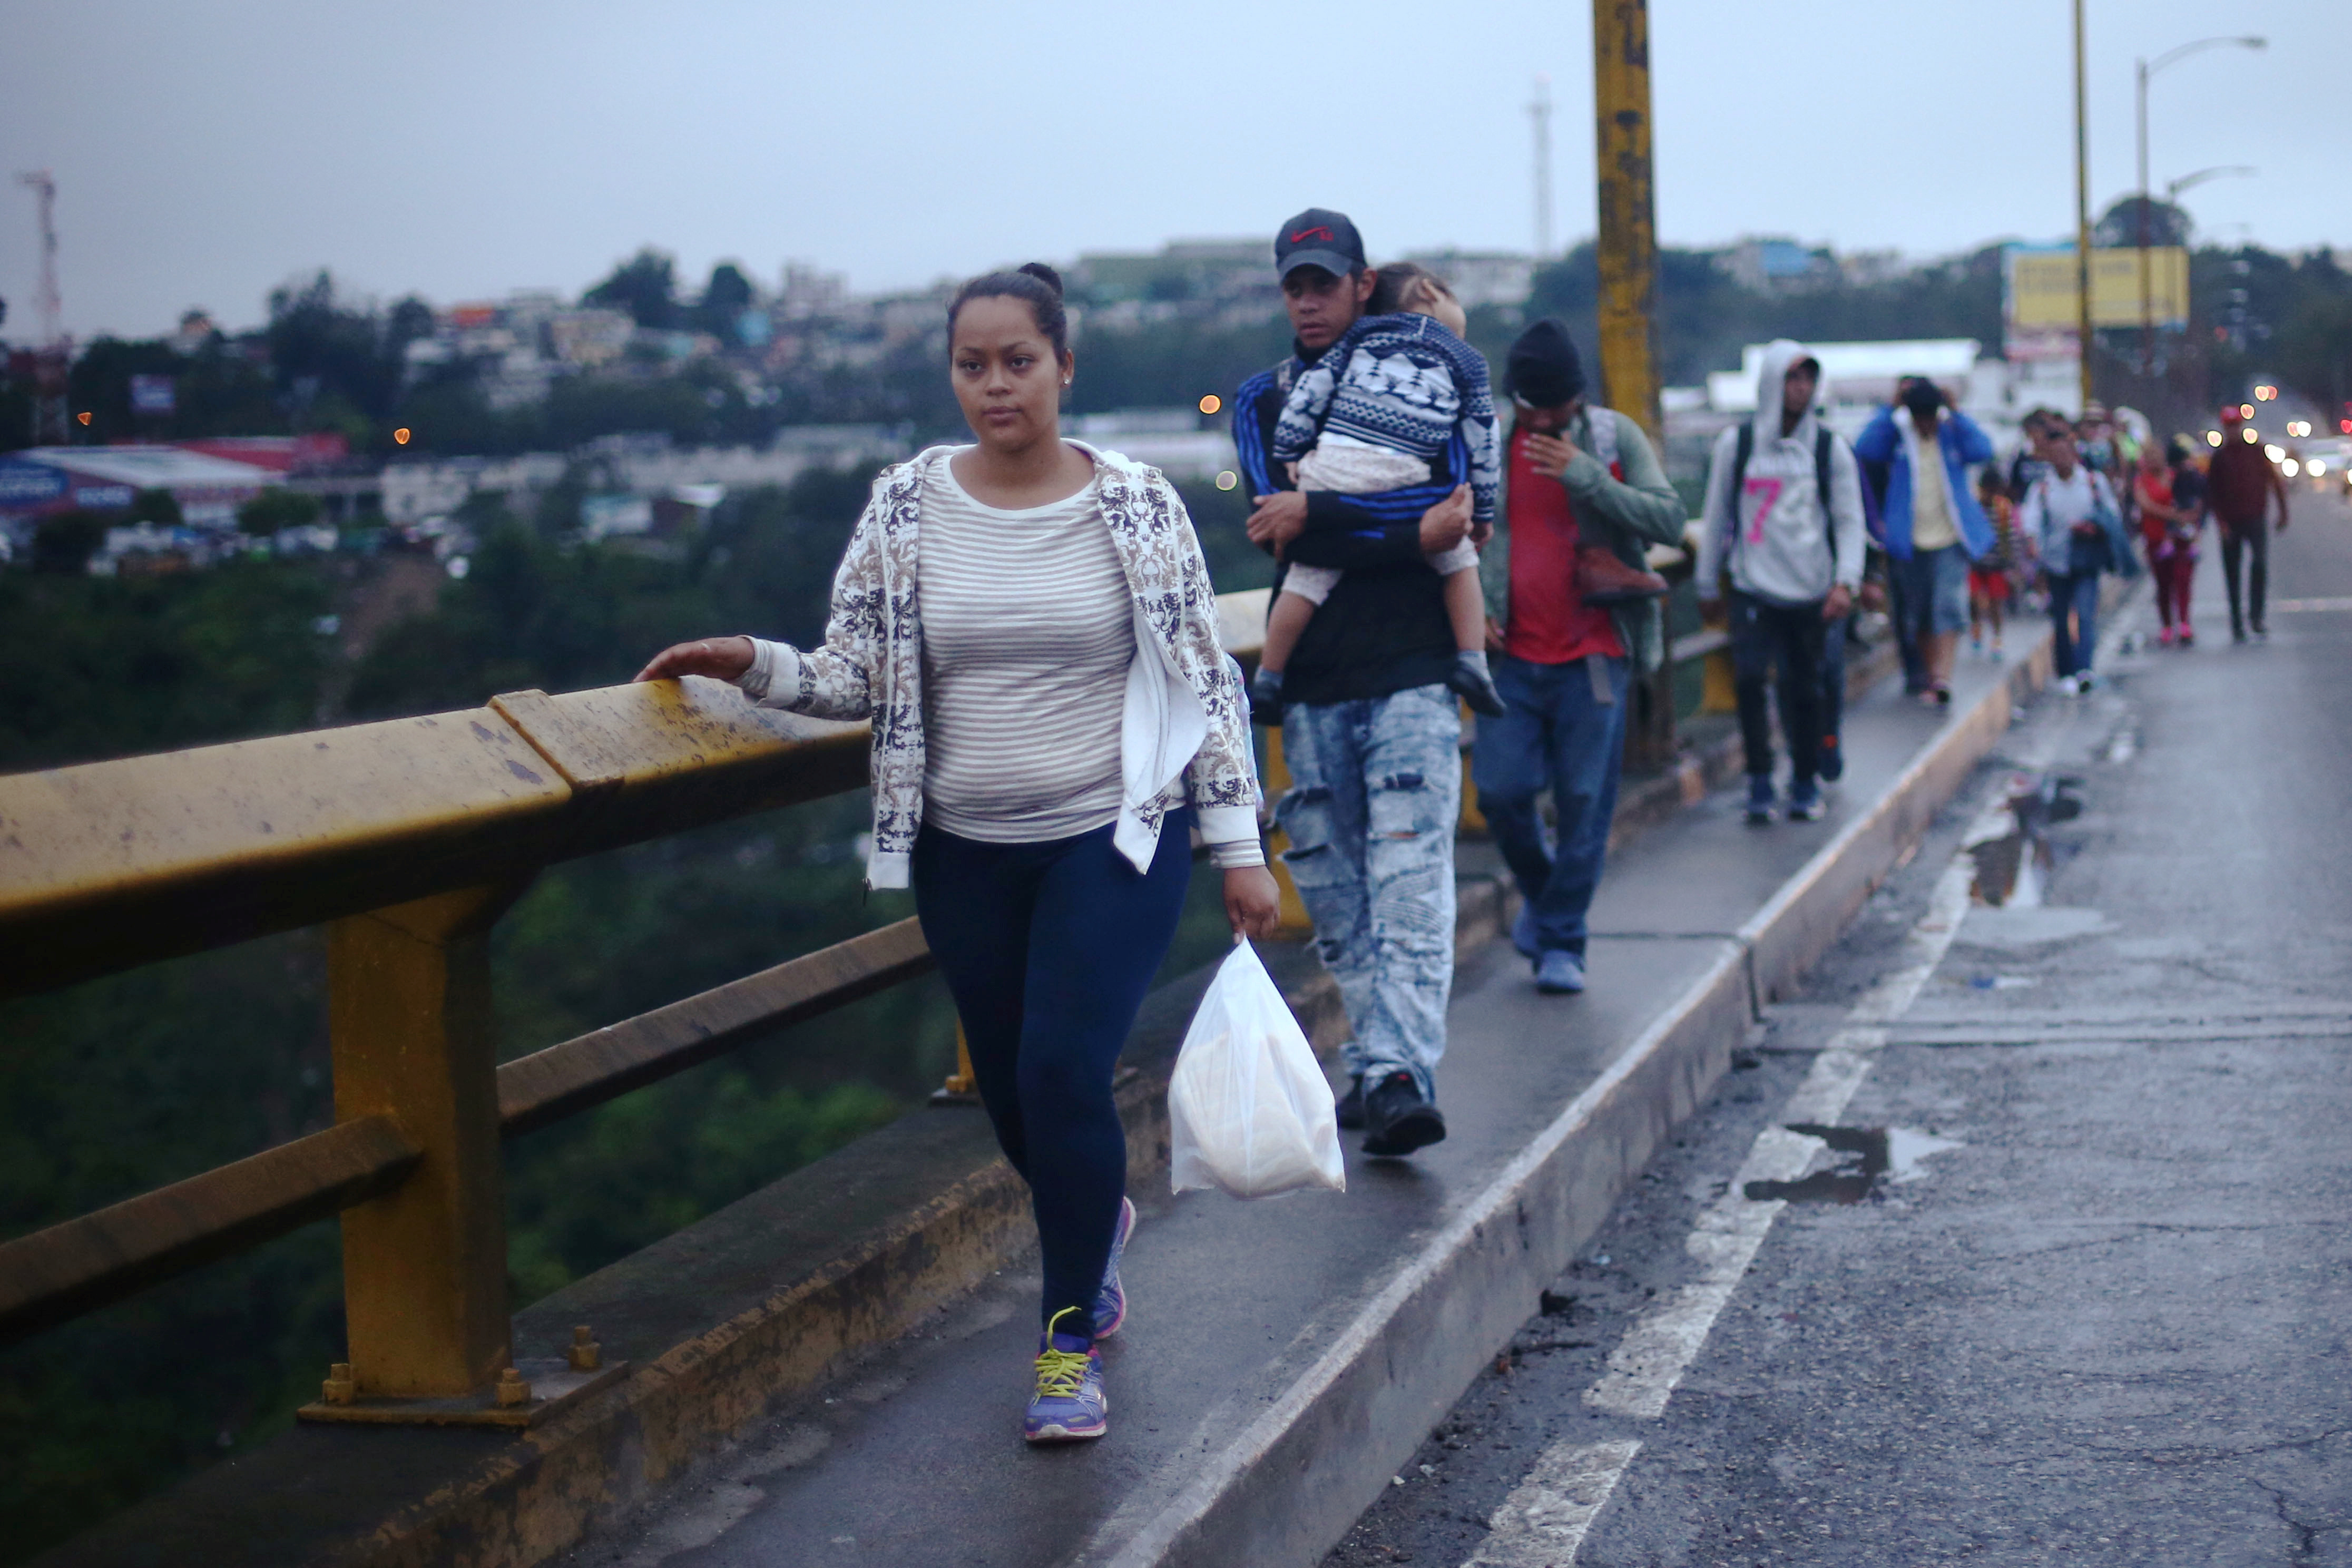 Honduran migrants, part of a caravan trying to reach the U.S., walk on a bridge during their travel in Guatemala City, Guatemala October 18, 2018. REUTERS/Edgard Garrido